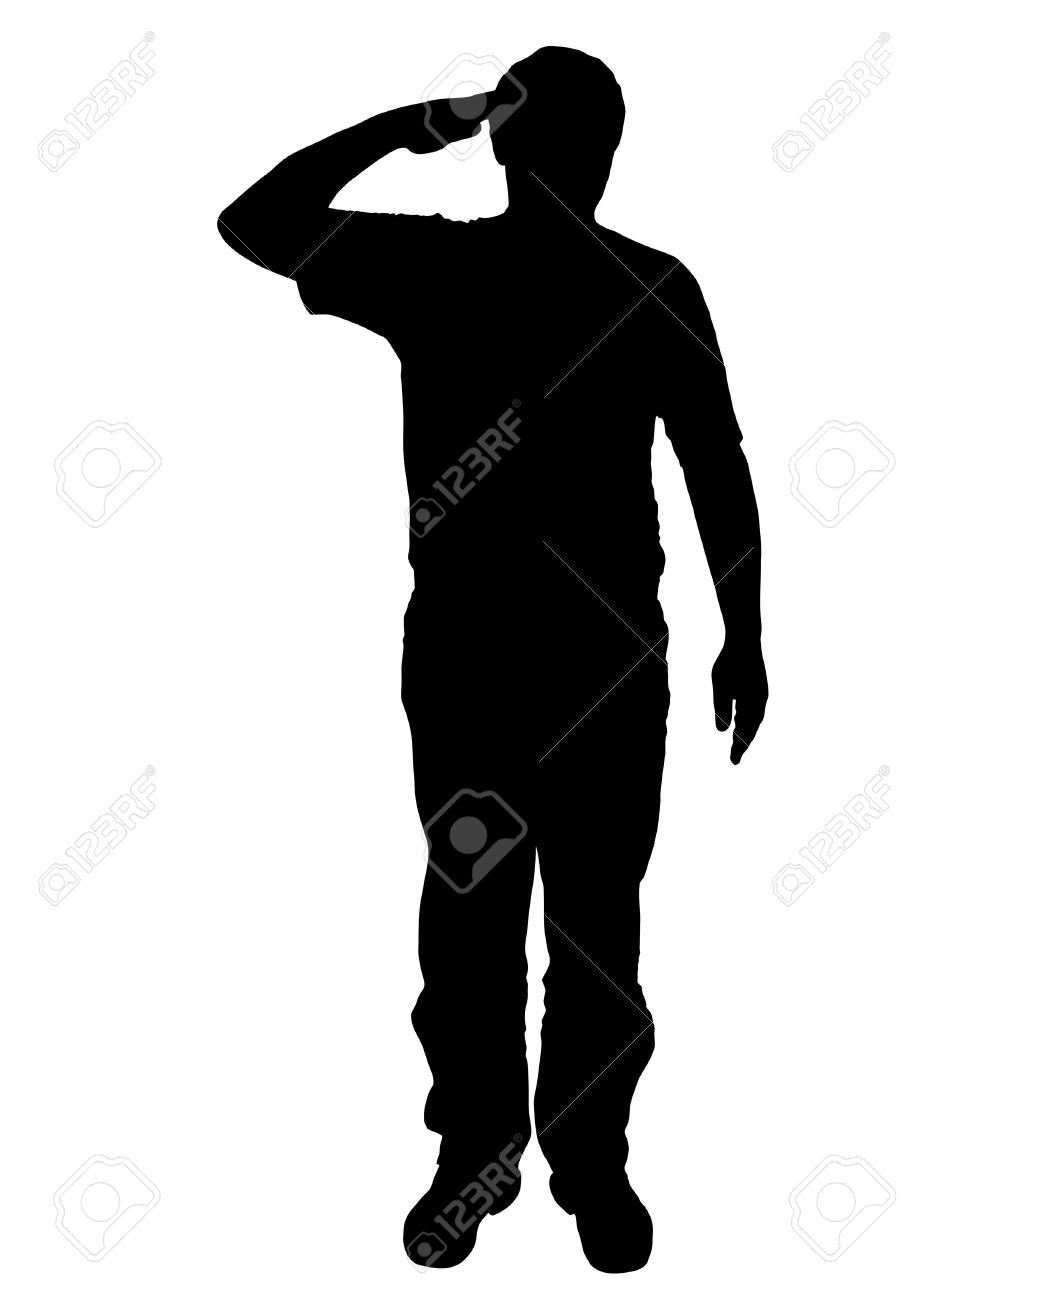 1039x1300 Soldier Clipart Hand Salute